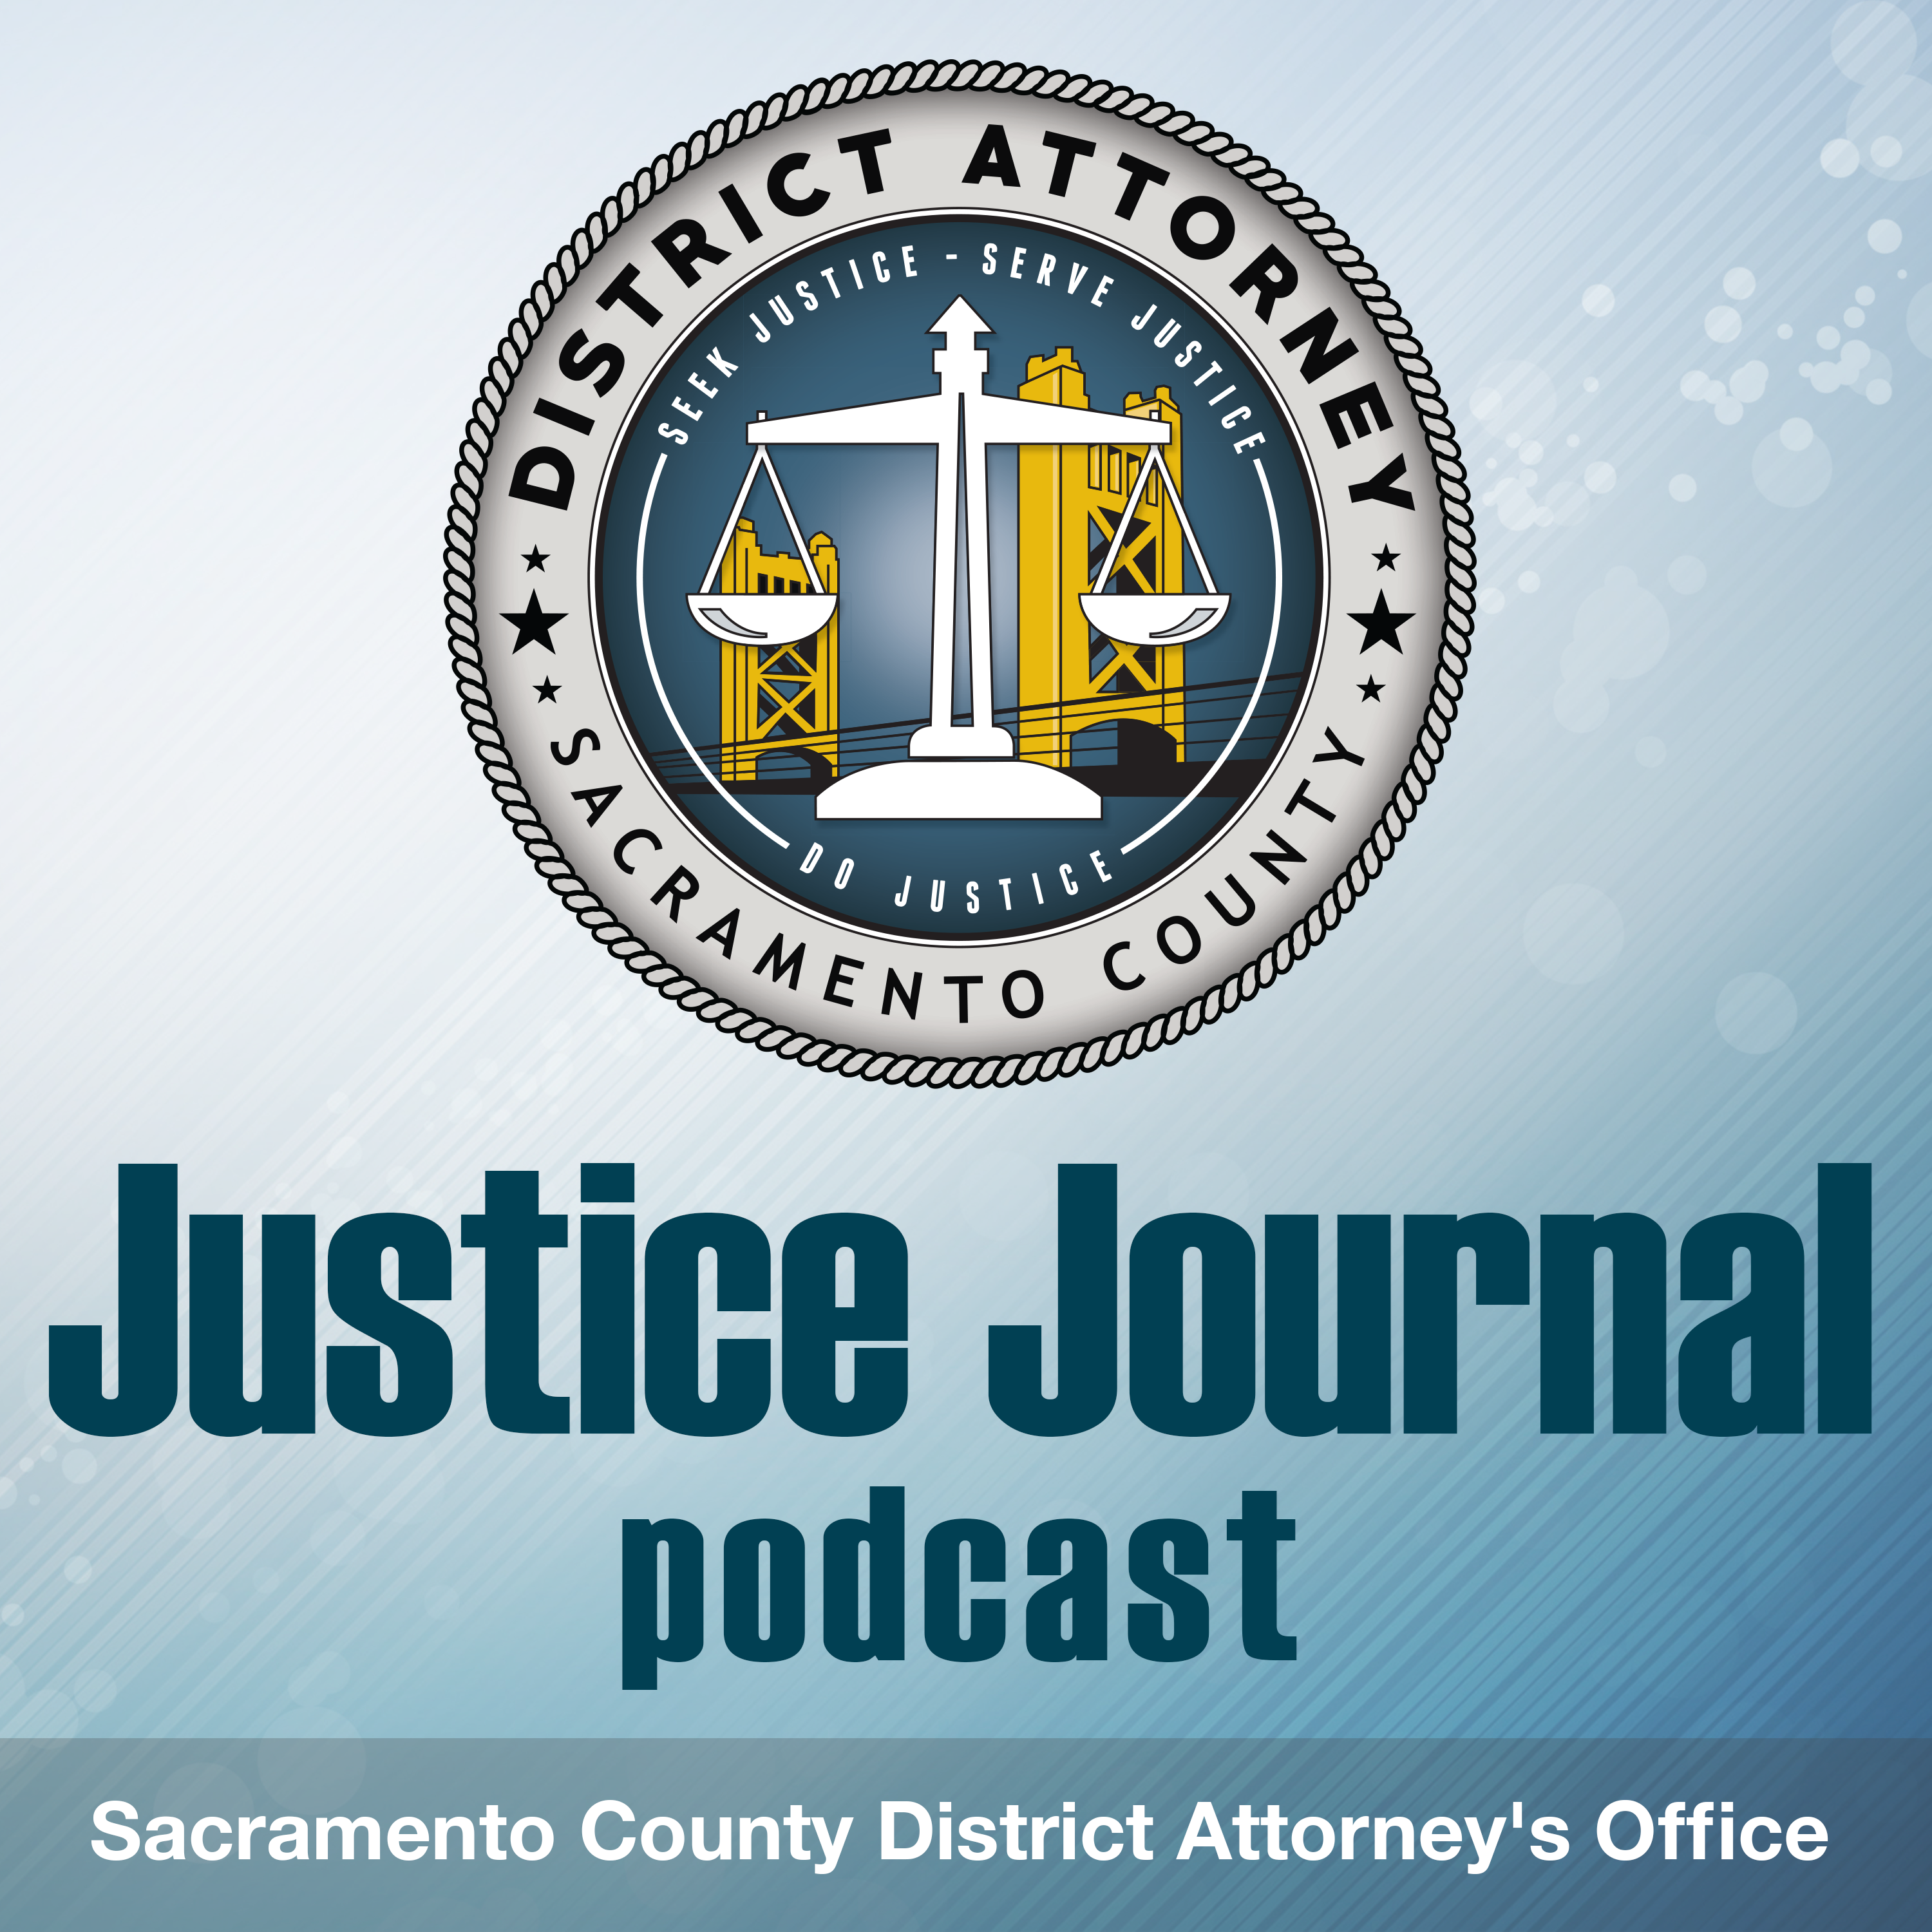 Real Estate Fraud: Successful Jury Trial During COVID-19 And Fraud Awareness - Justice Journal Episode 41